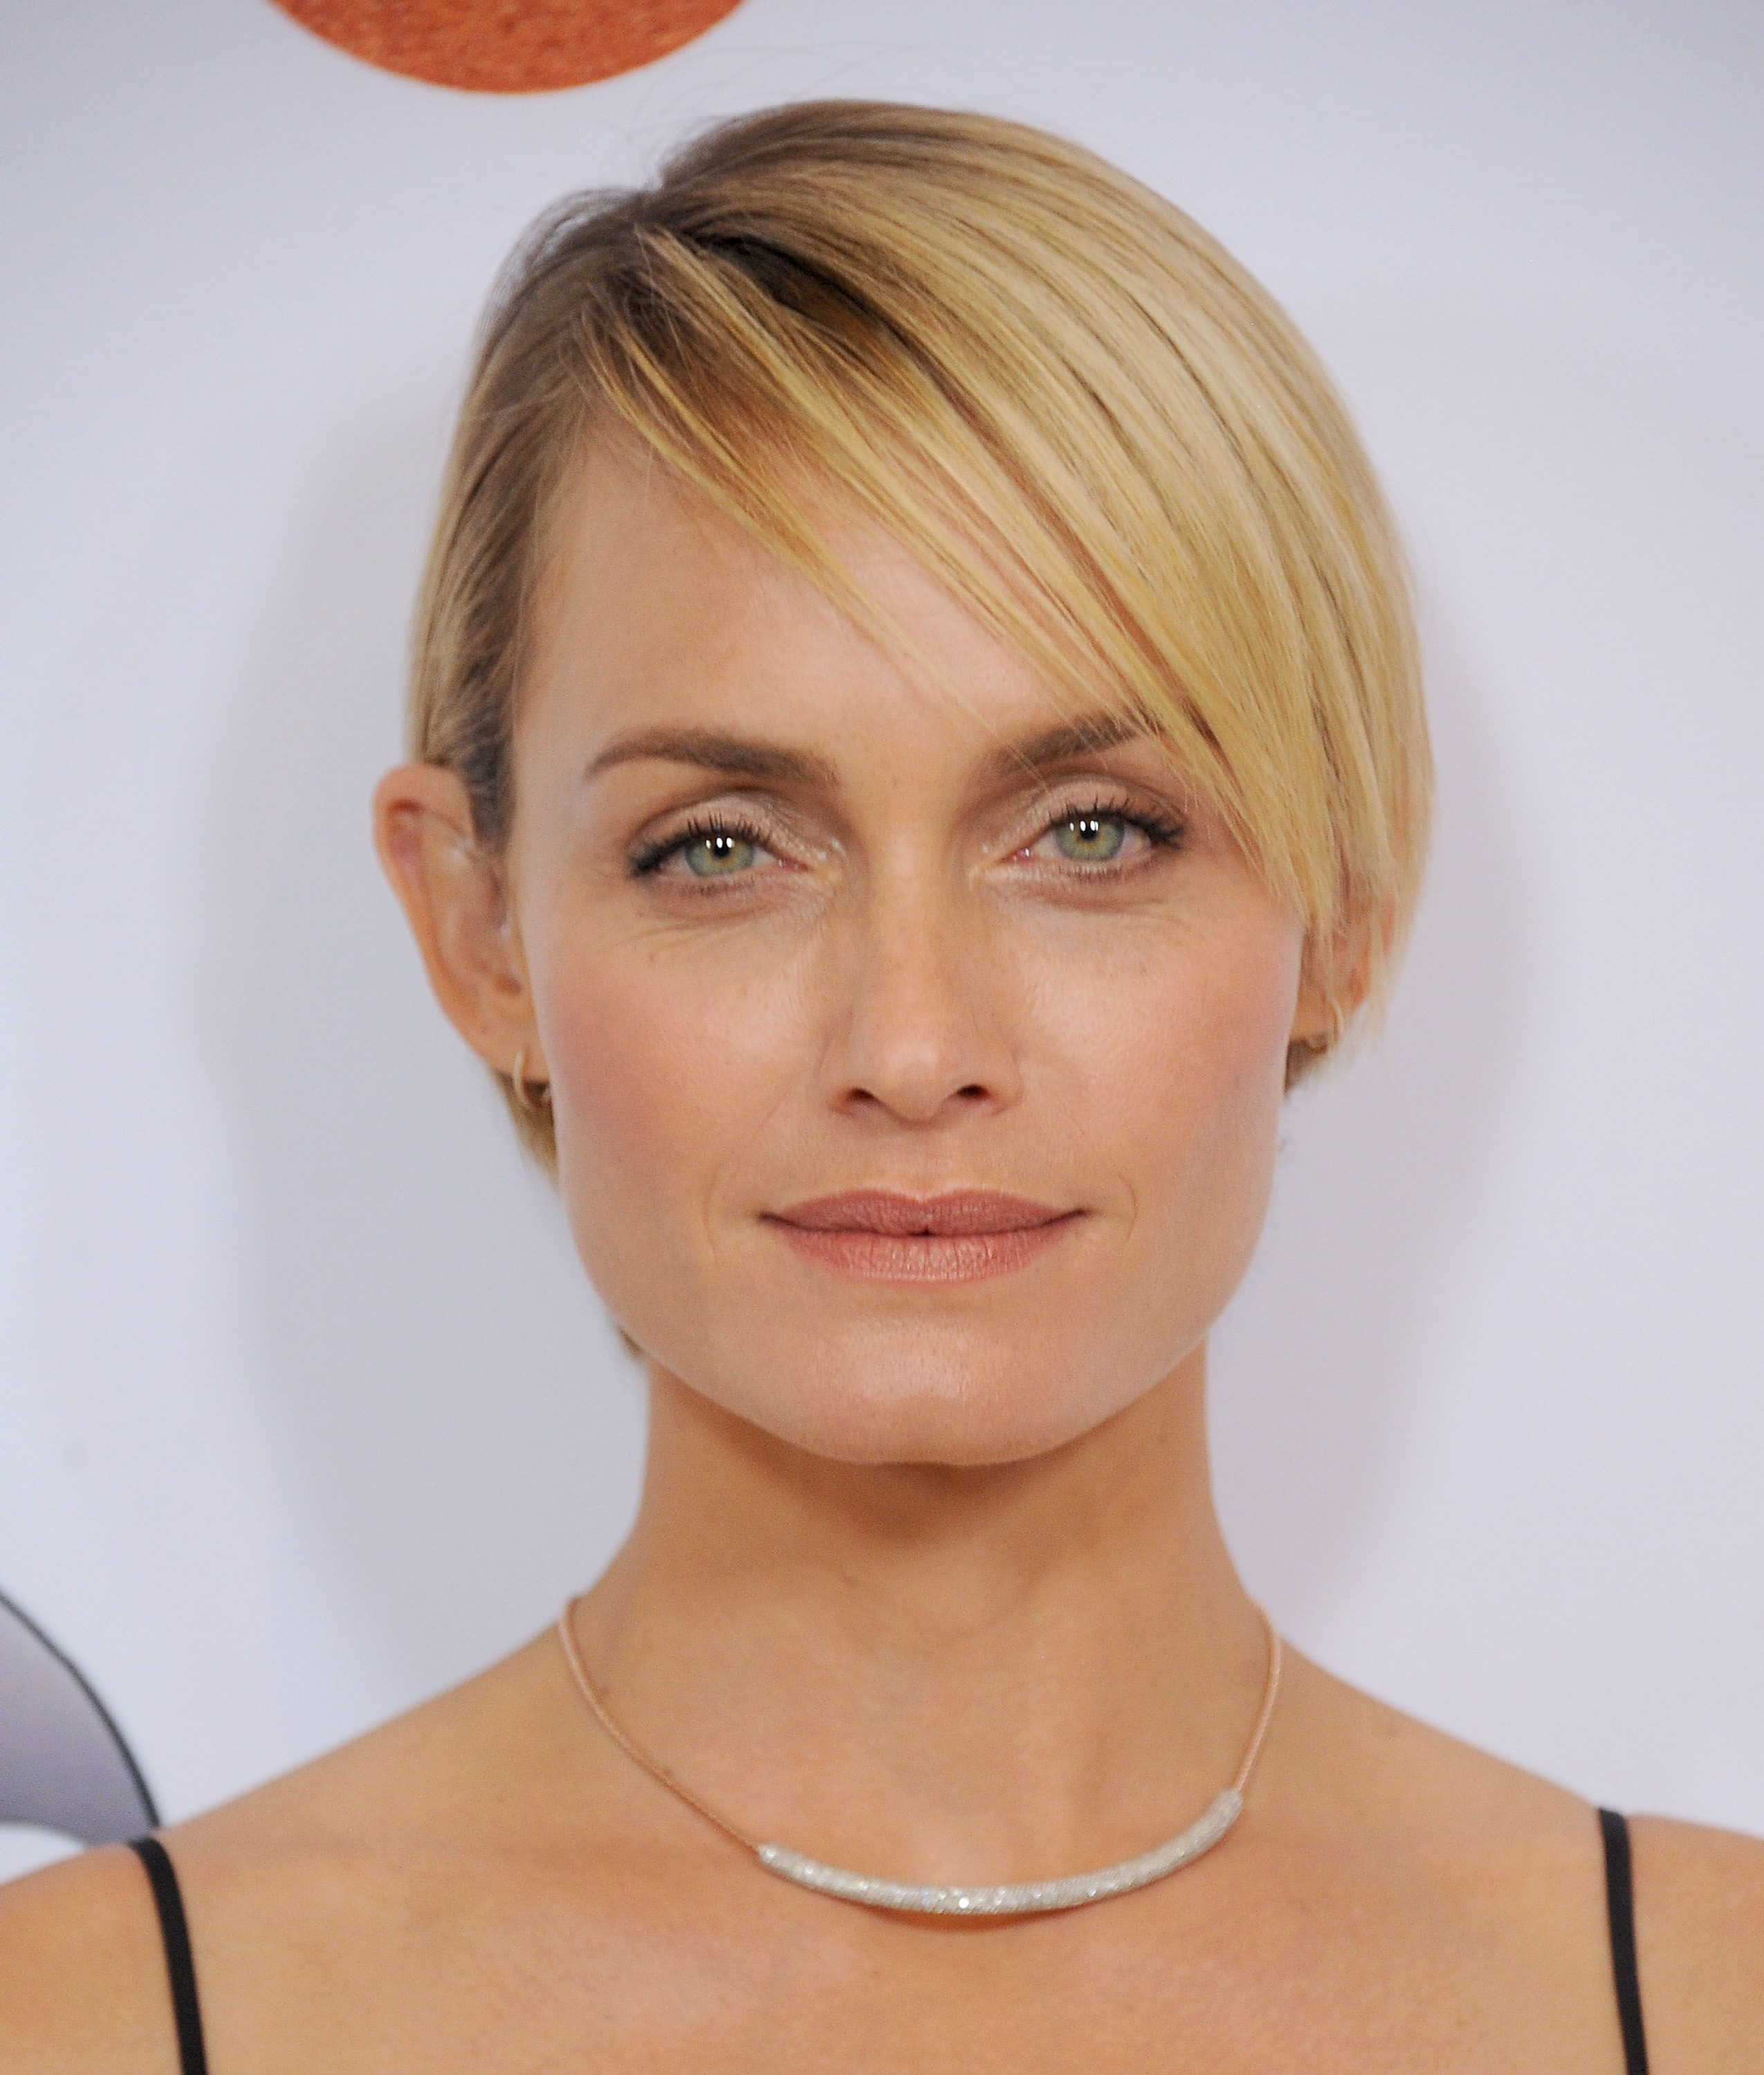 65 Best Short Hairstyles, Haircuts, And Short Hair Ideas For 2018 Intended For Cute Celebrity Short Haircuts (Gallery 19 of 25)